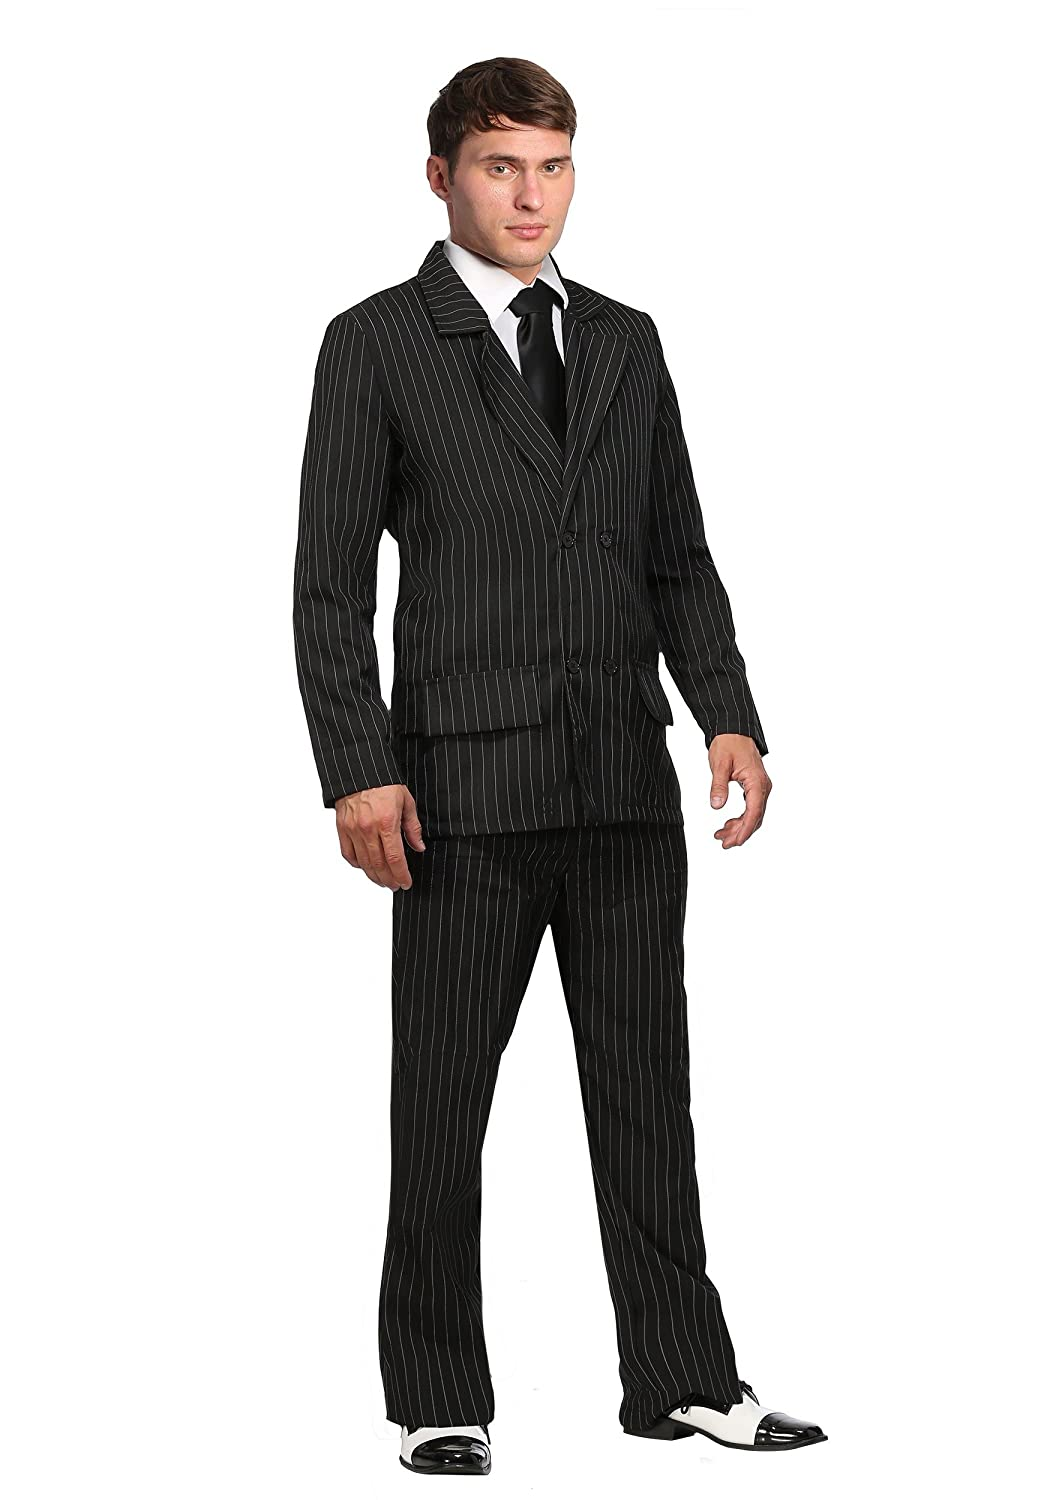 1940s Zoot Suit History & Buy Modern Zoot Suits Deluxe Plus Size Gangster Costume Suit 1920s Gangster 2X $59.99 AT vintagedancer.com